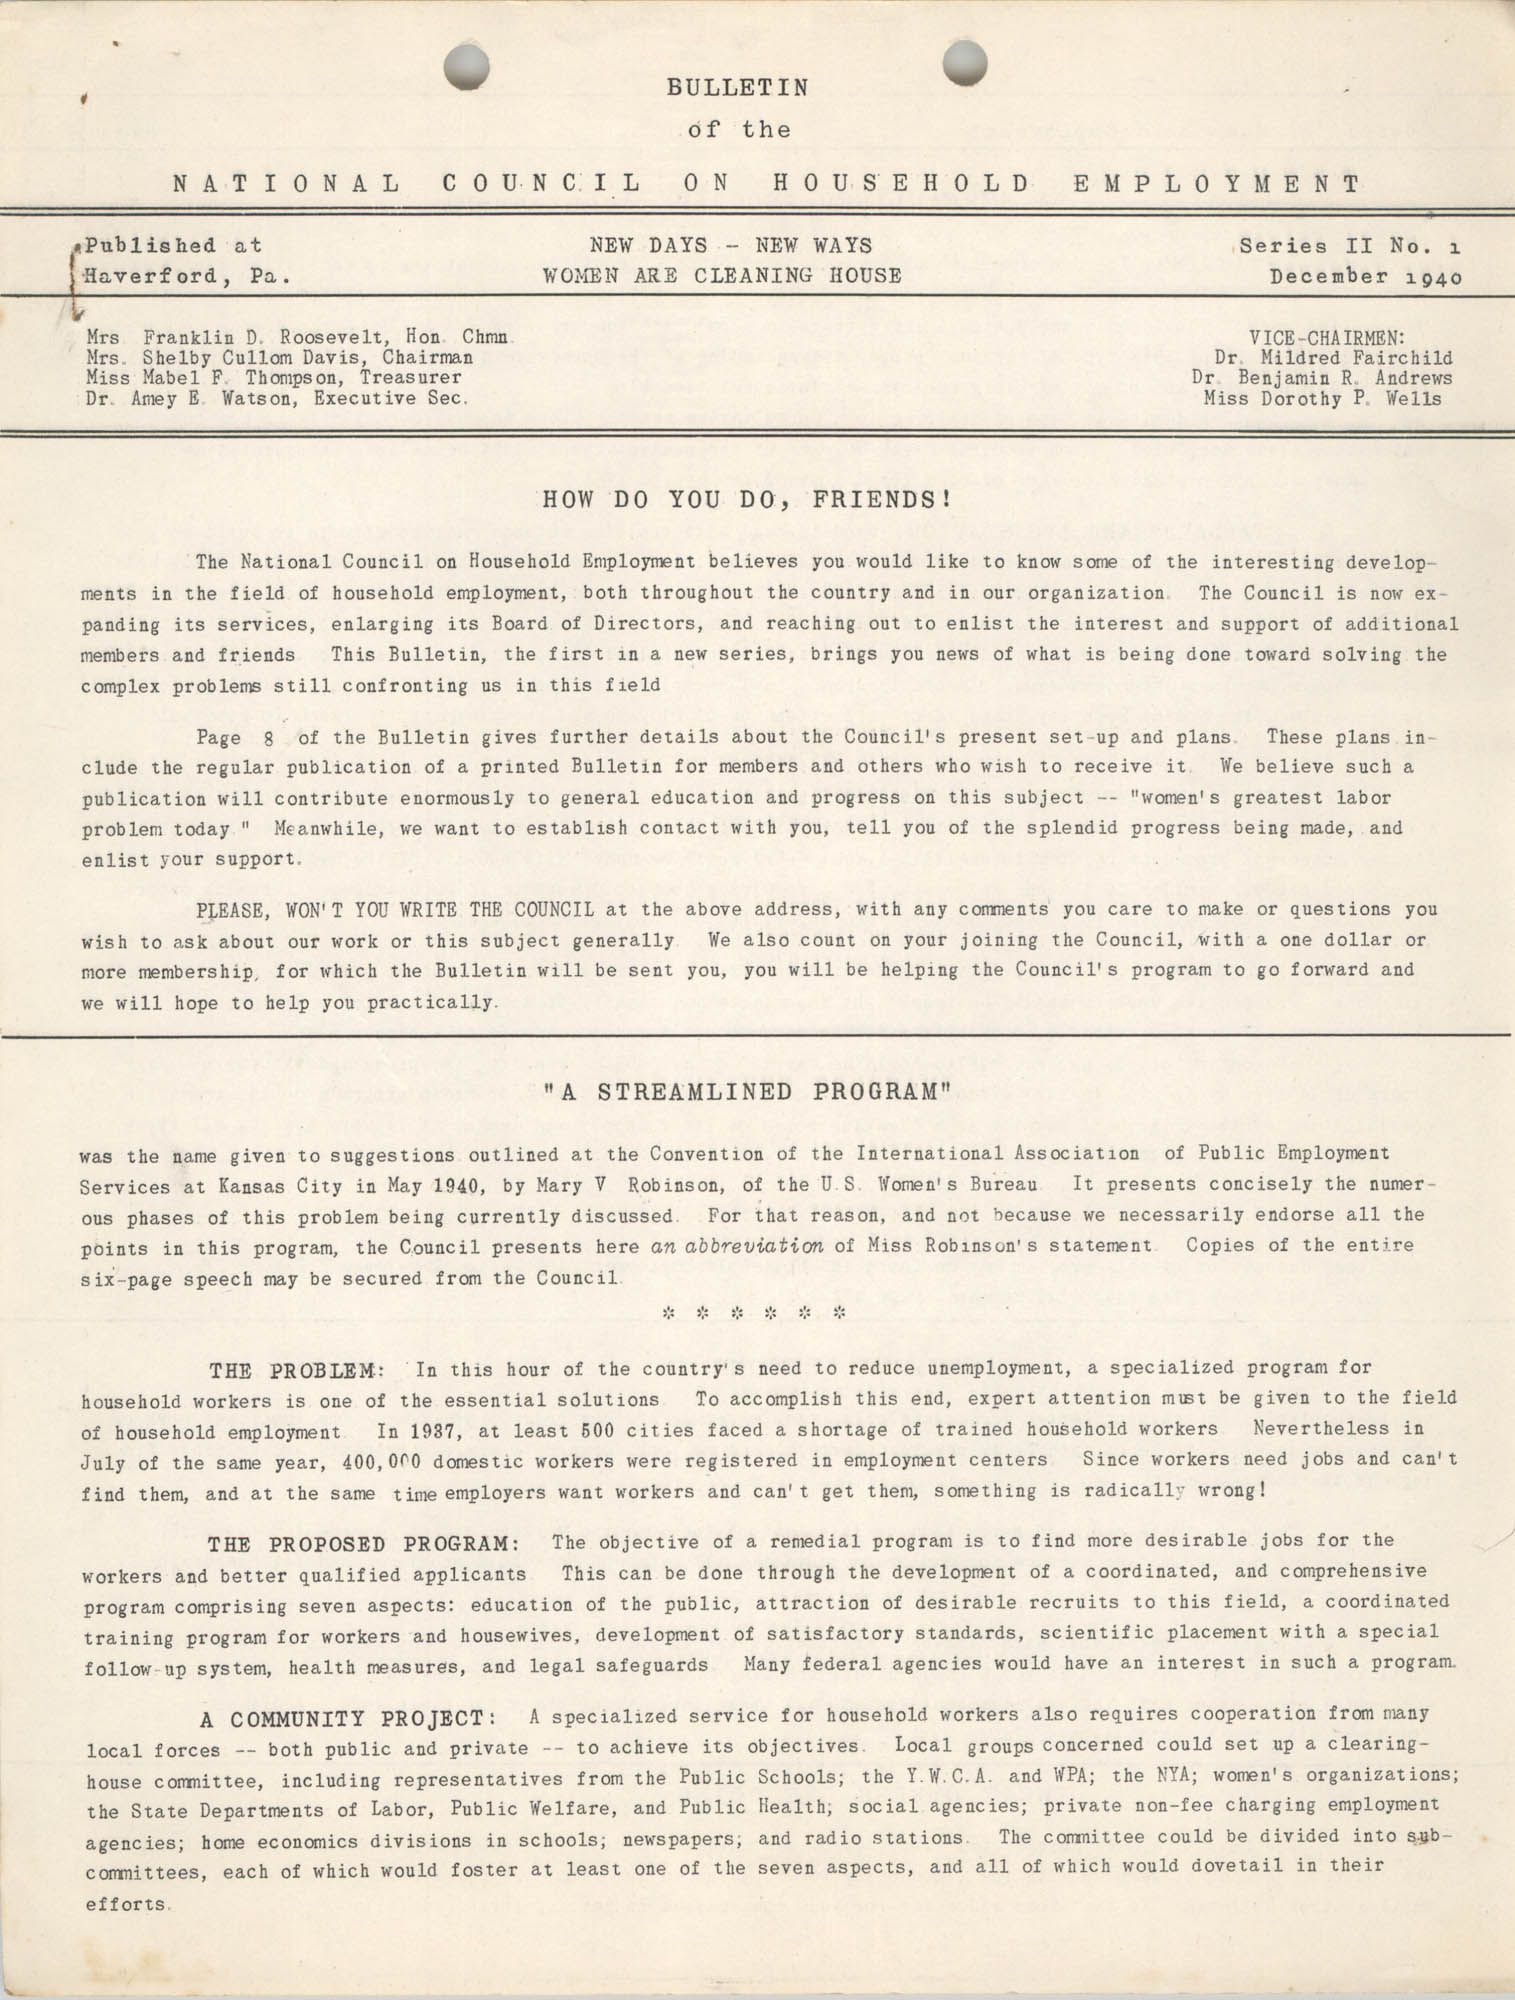 Bulletin of the National Council on Household Employment, Series II, No. 1, December 1940, Page 1